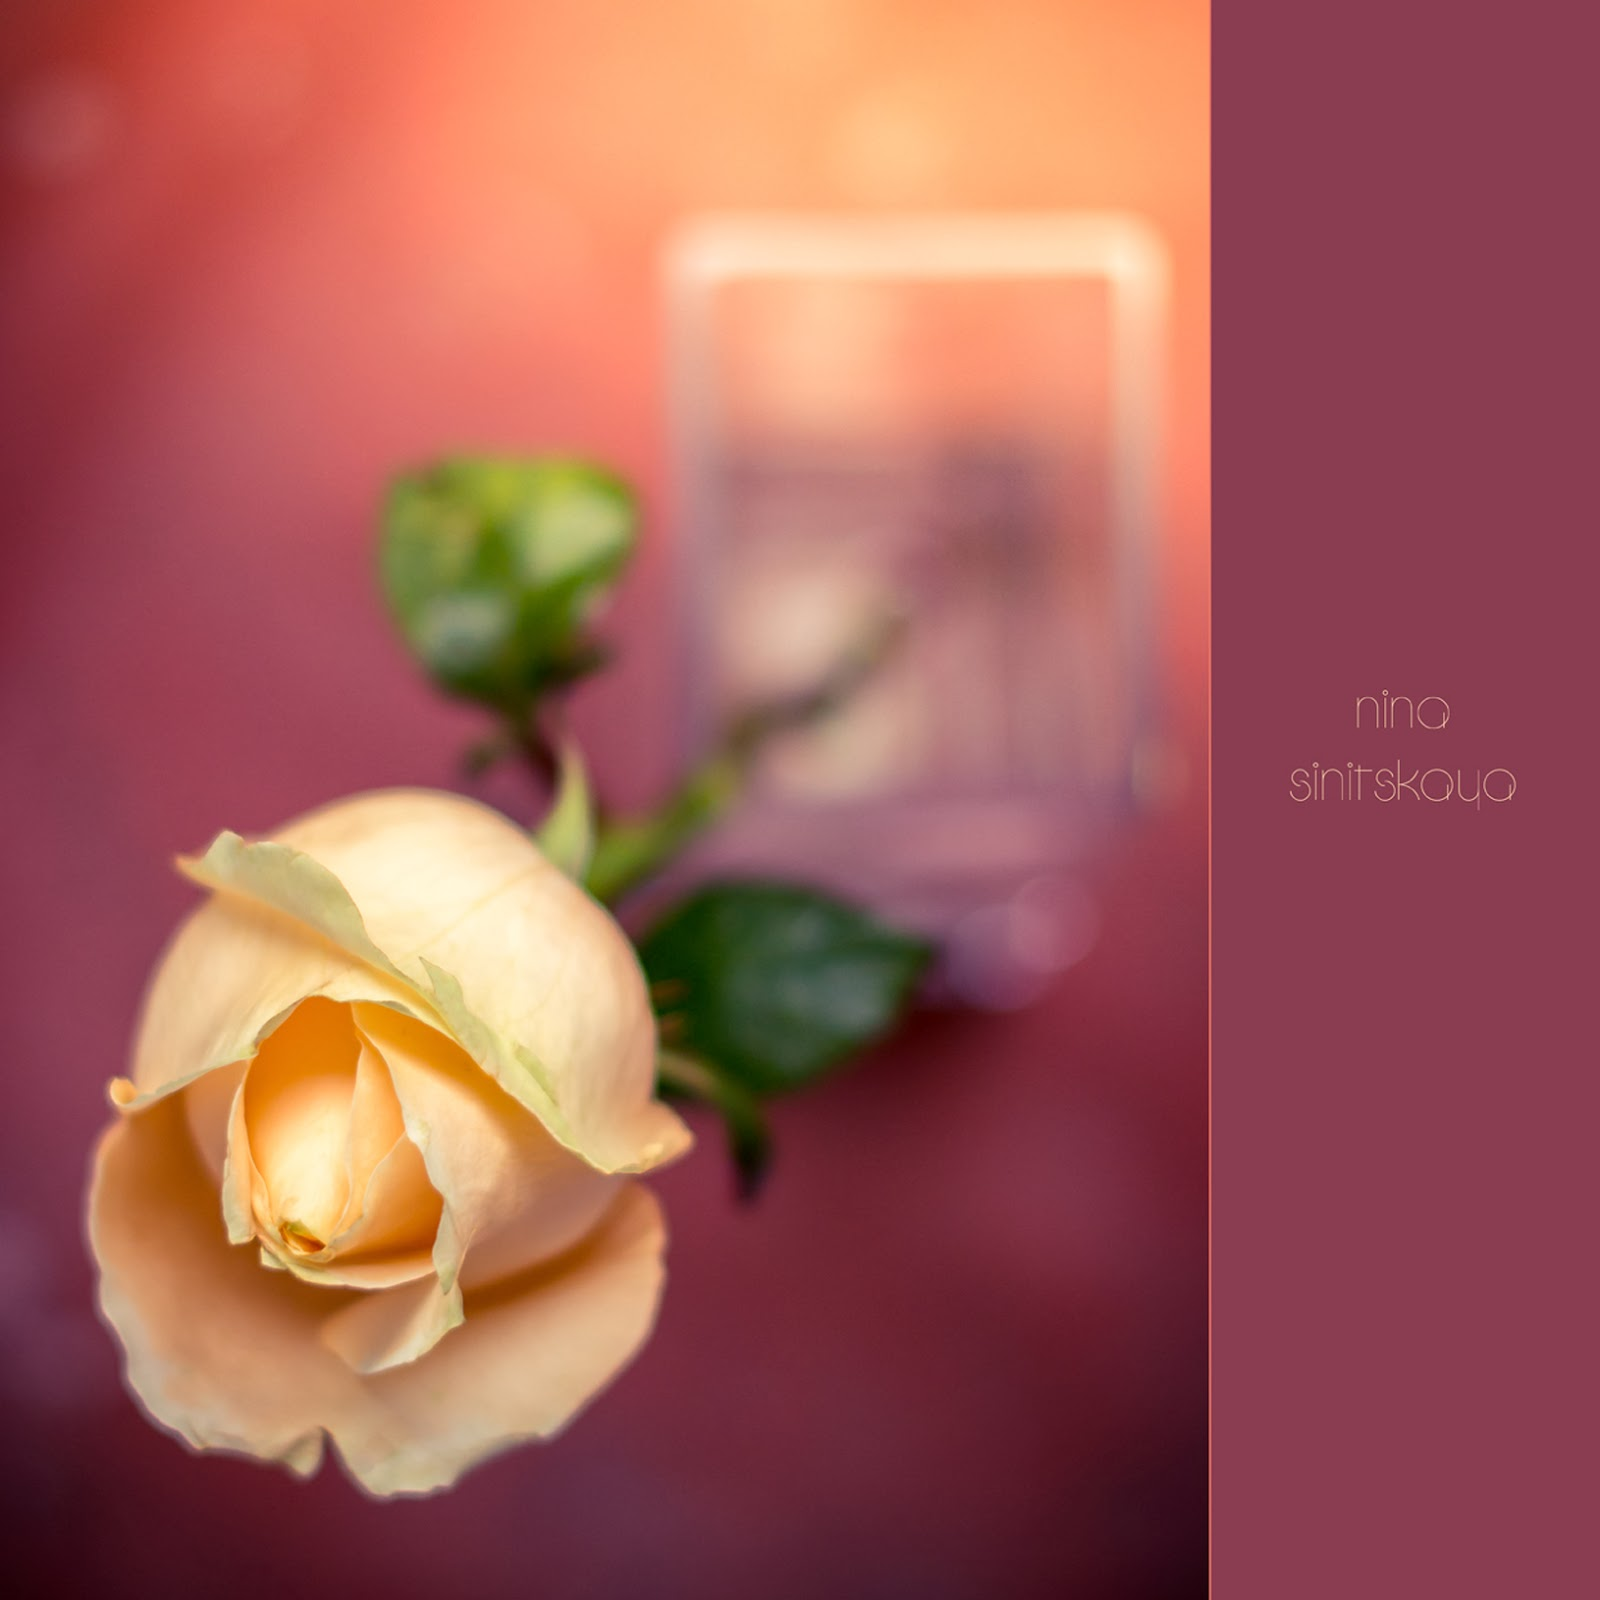 Floral Photography. Soft and hazy image of the peach rose